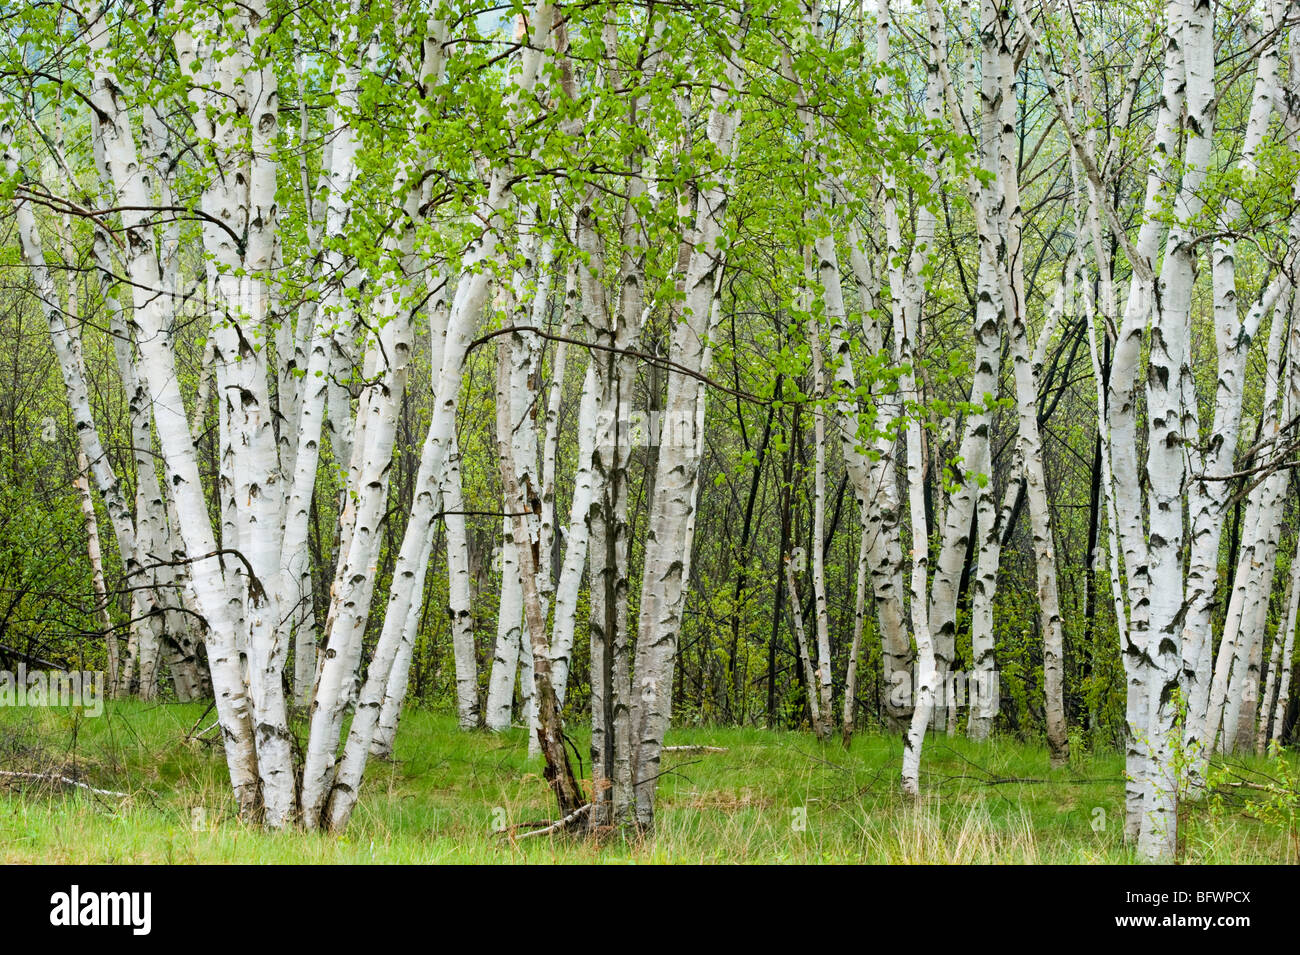 birch trees with emerging